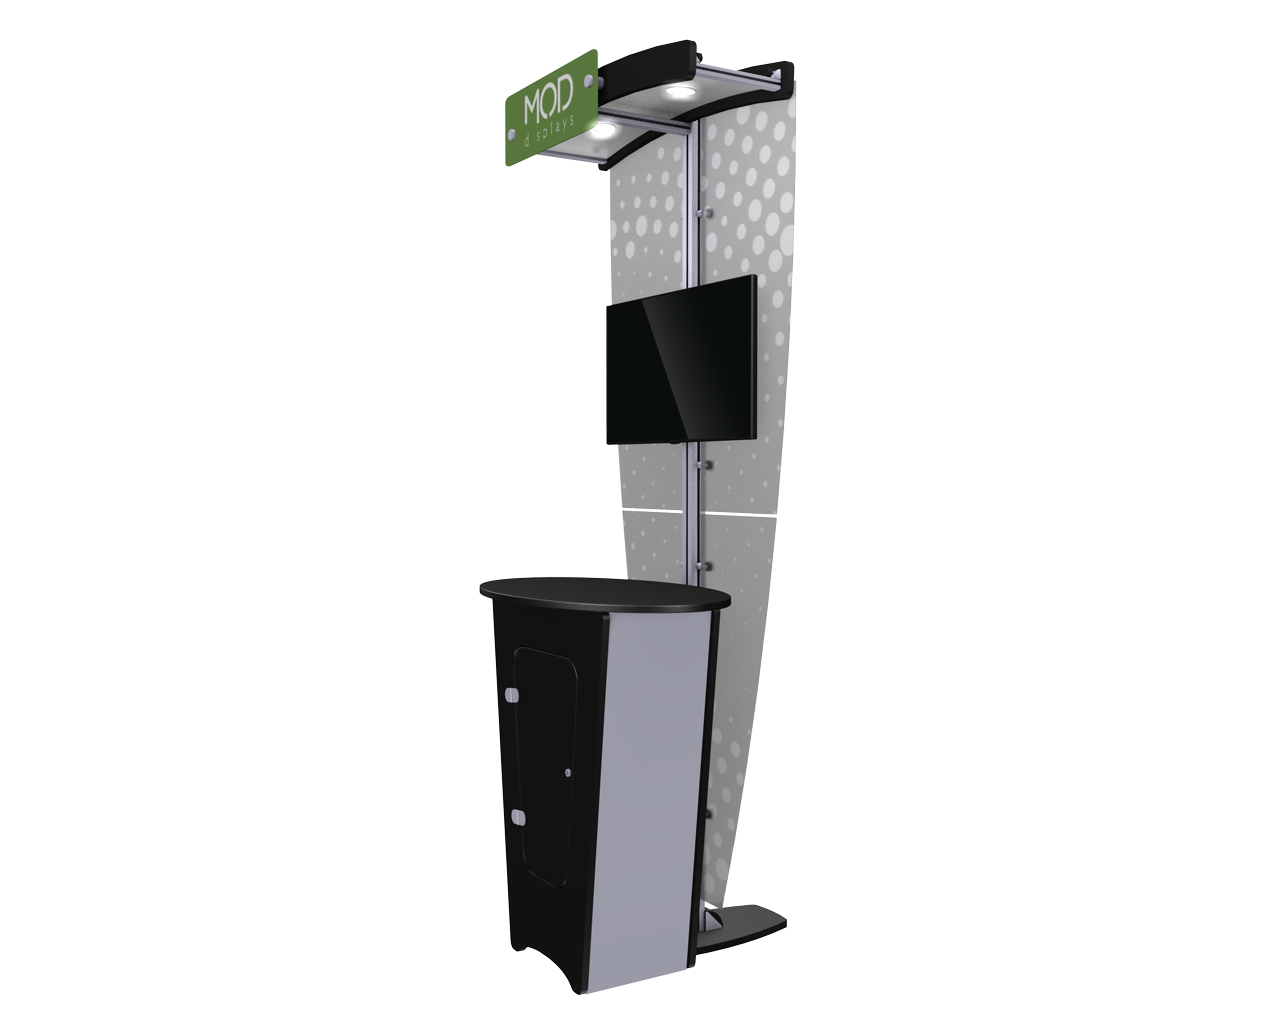 Exhibitline Kb.NLC1 Locking Kiosk